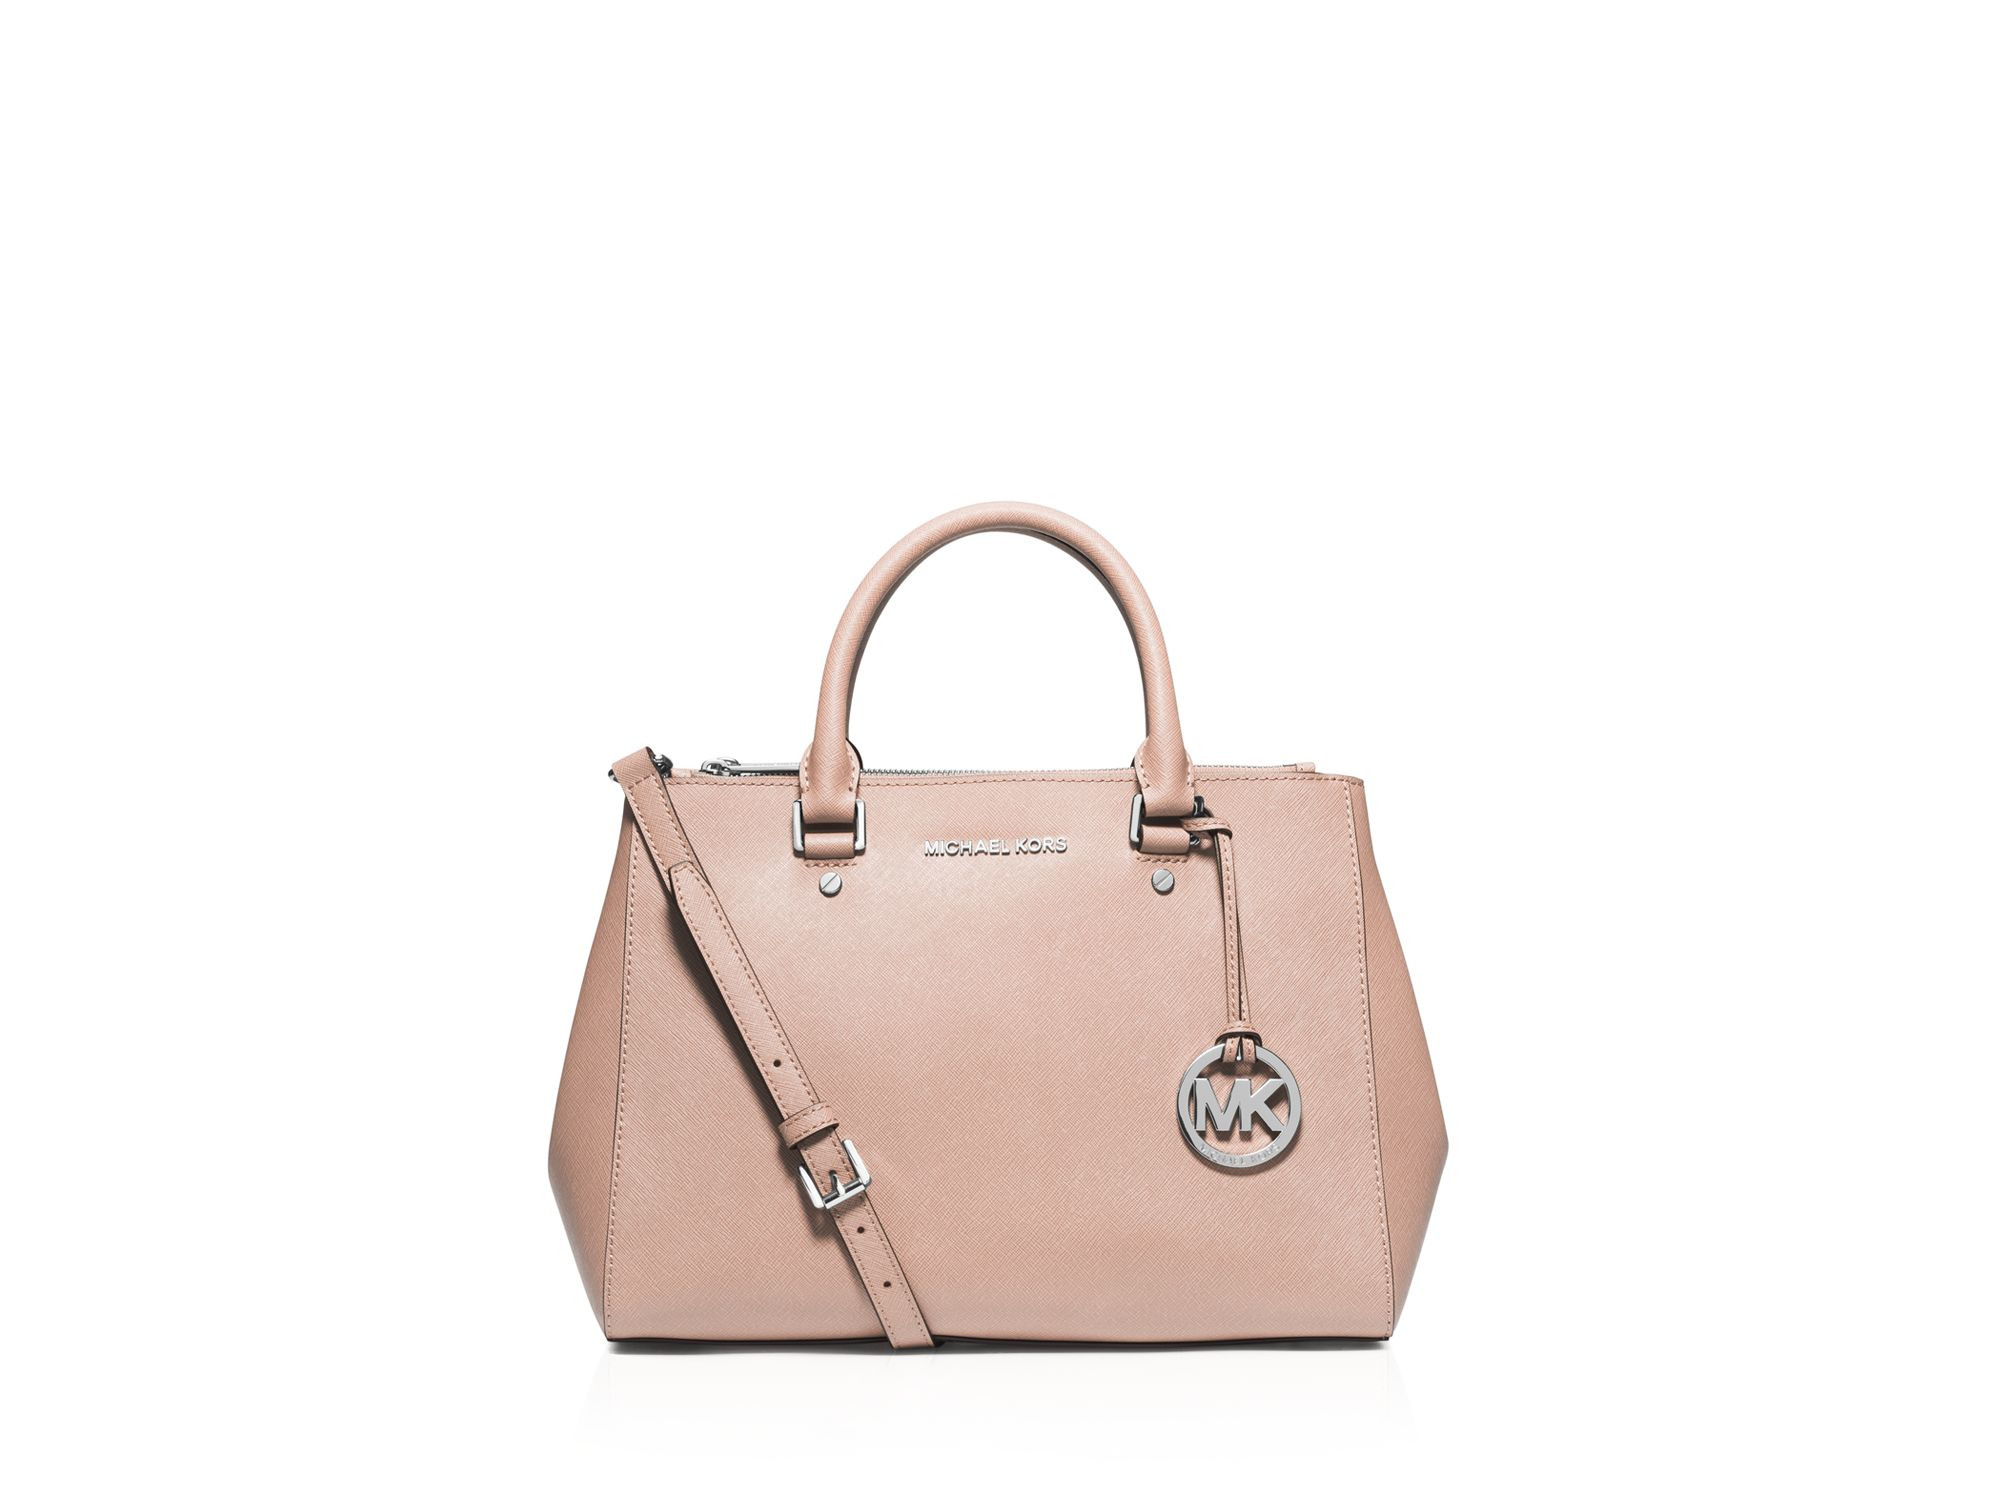 2bdd909281cd Gallery. Previously sold at: Bloomingdale's · Women's Michael By Michael  Kors Sutton